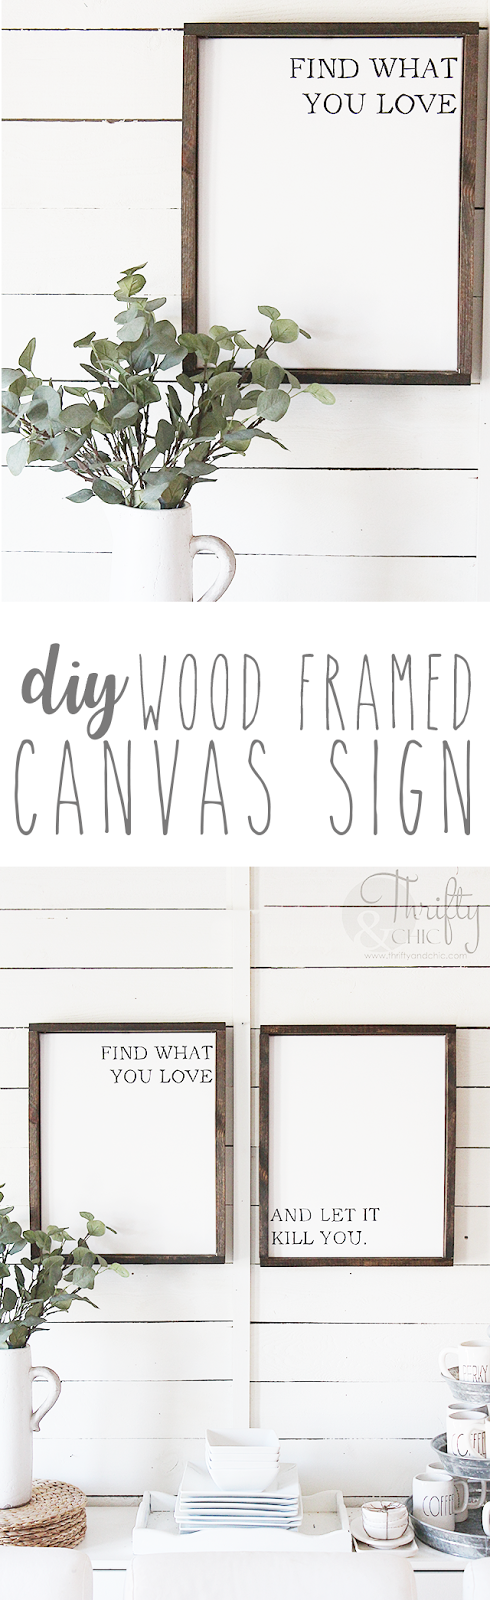 Diy framed canvas signs best of thrifty and chic pinterest diy framed canvas quote sign or art white canvas with black quote and lettering diy farmhouse sign how to make a framed canvas sign solutioingenieria Gallery